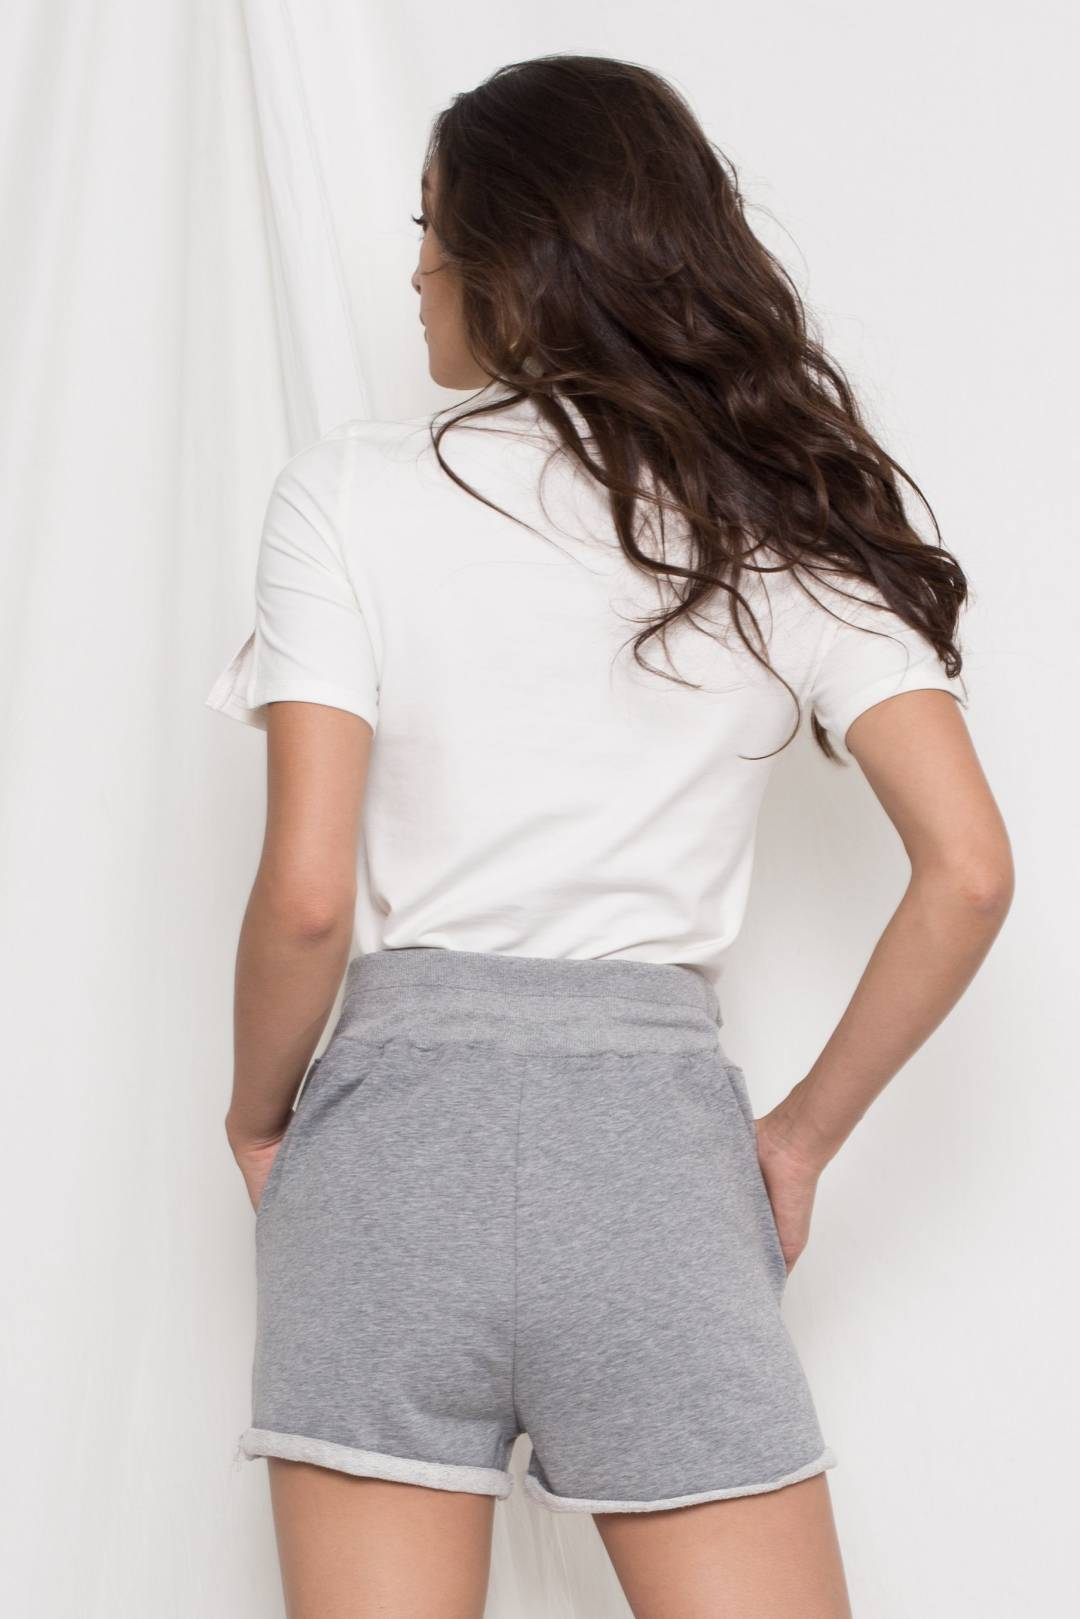 Snooze Button Shorts in Grey